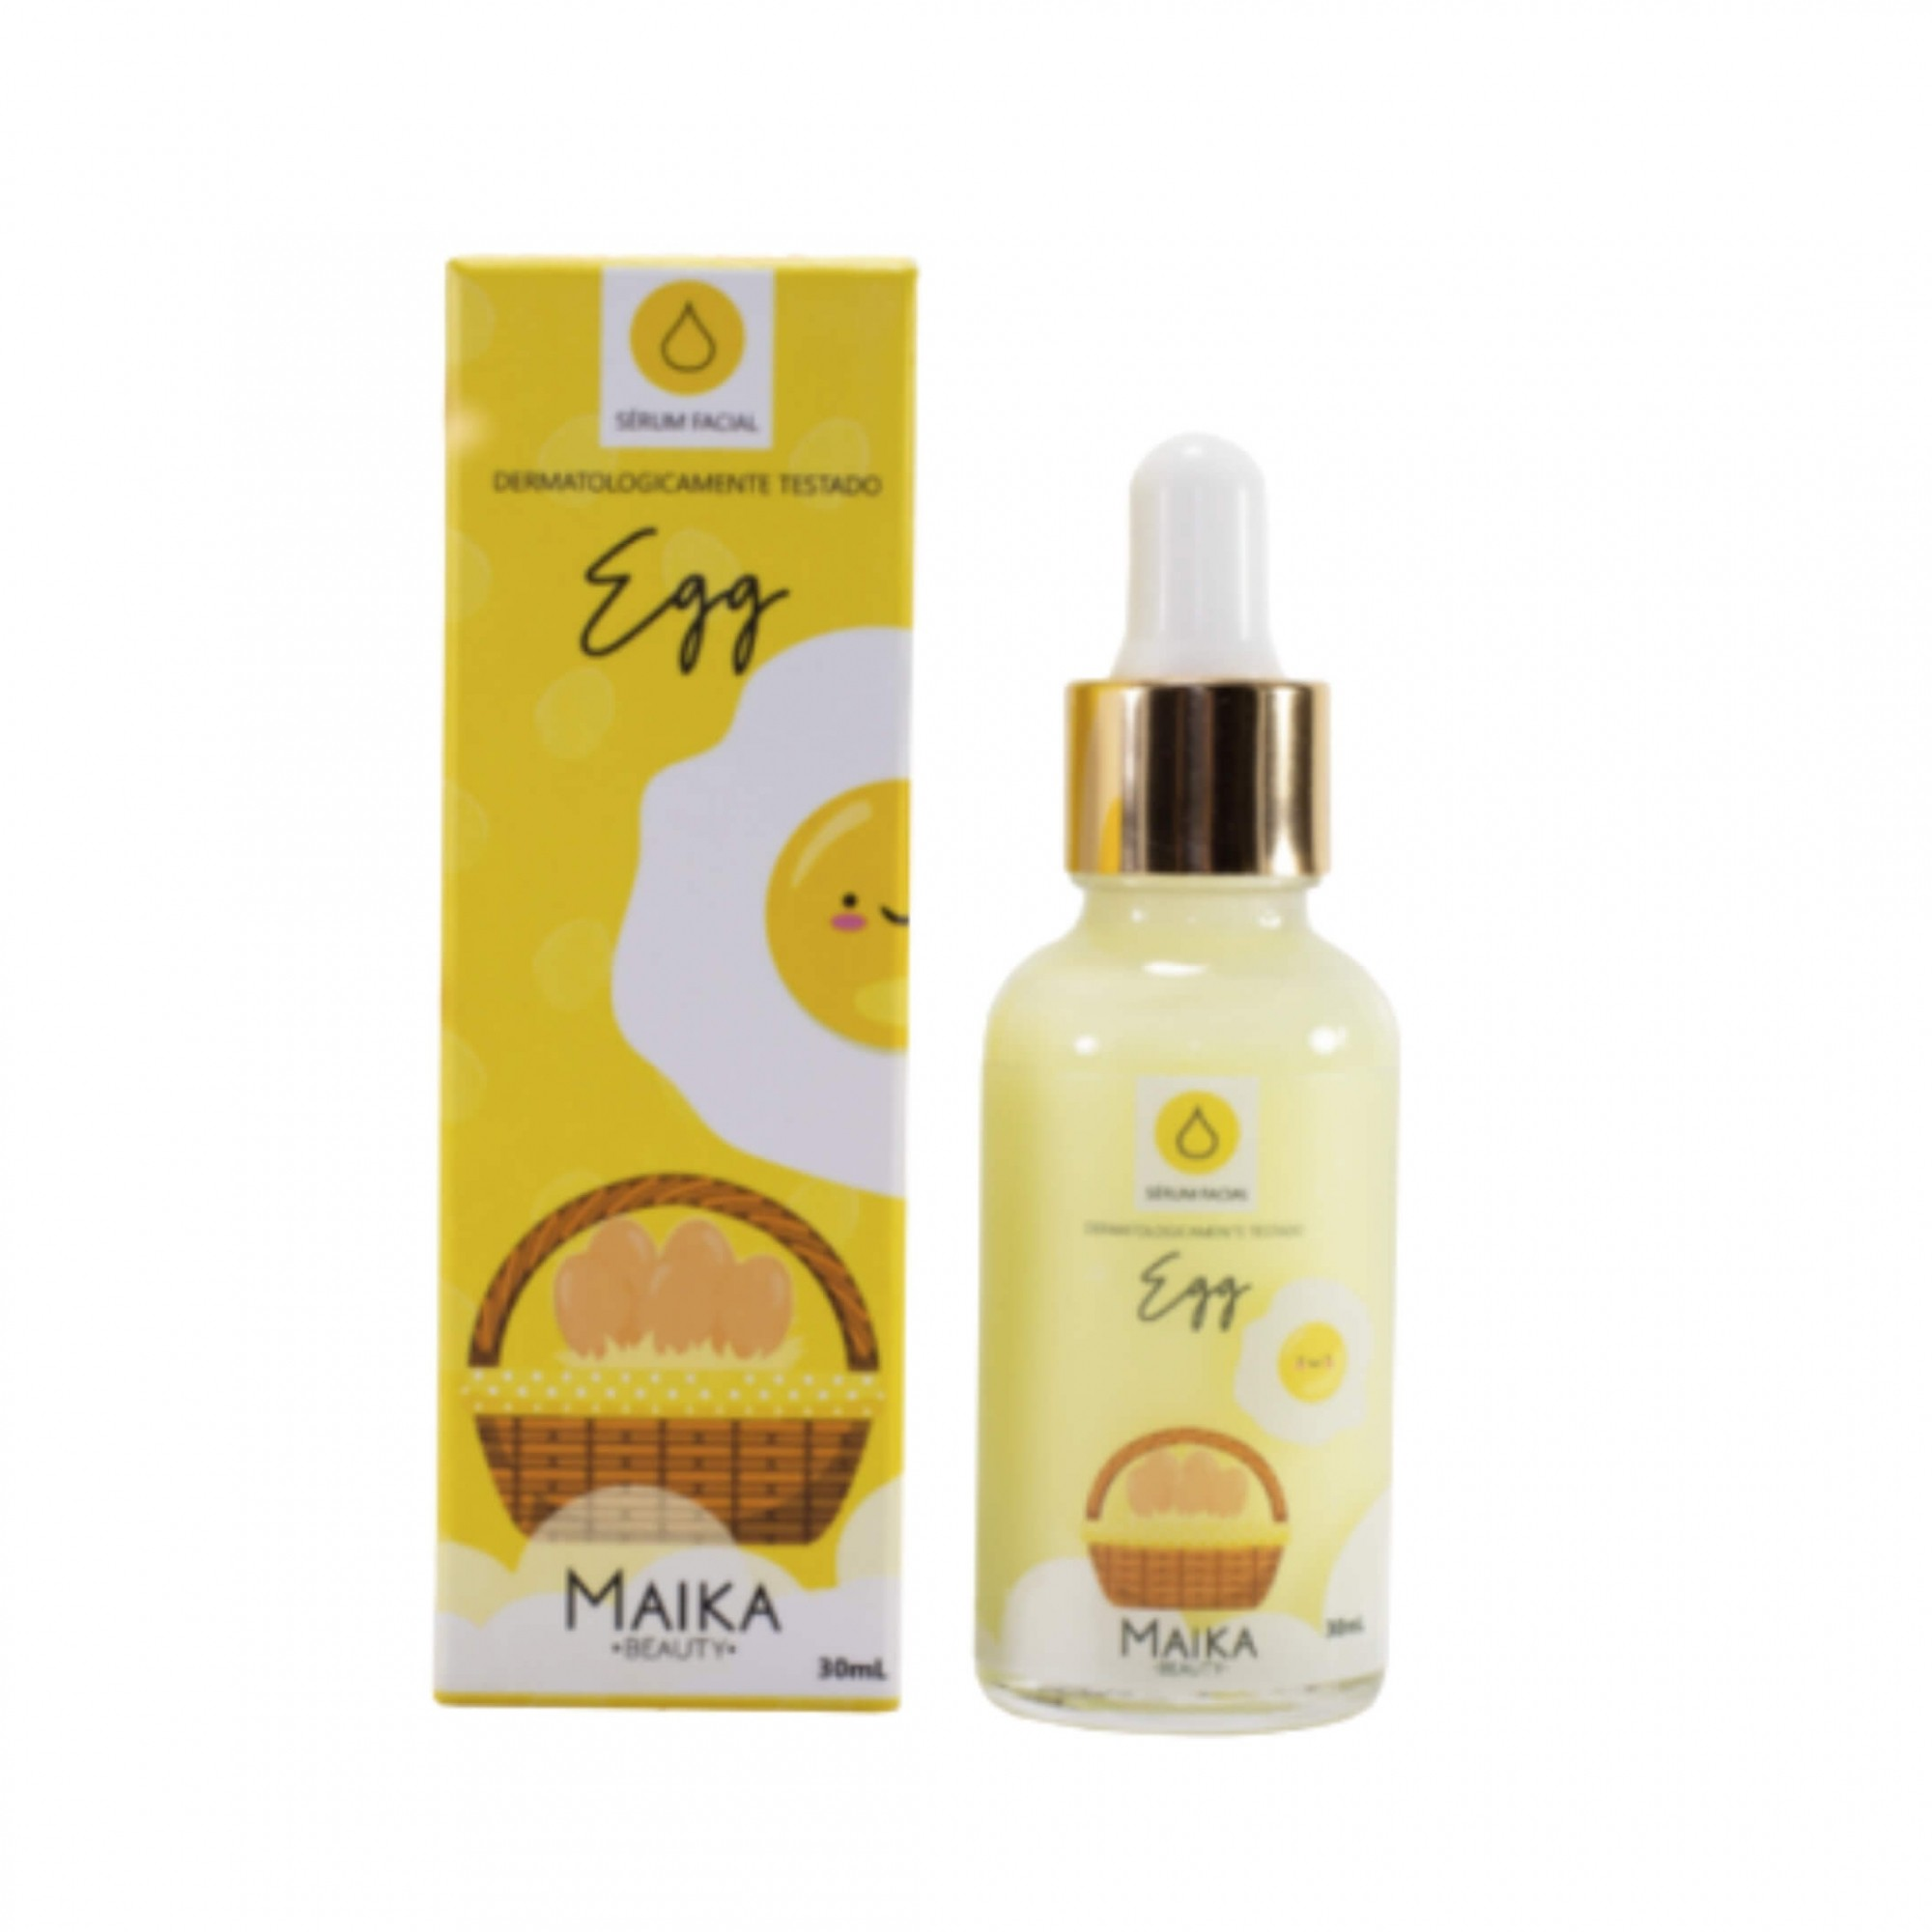 Sérum Facial Egg - Maika Beauty 30ml